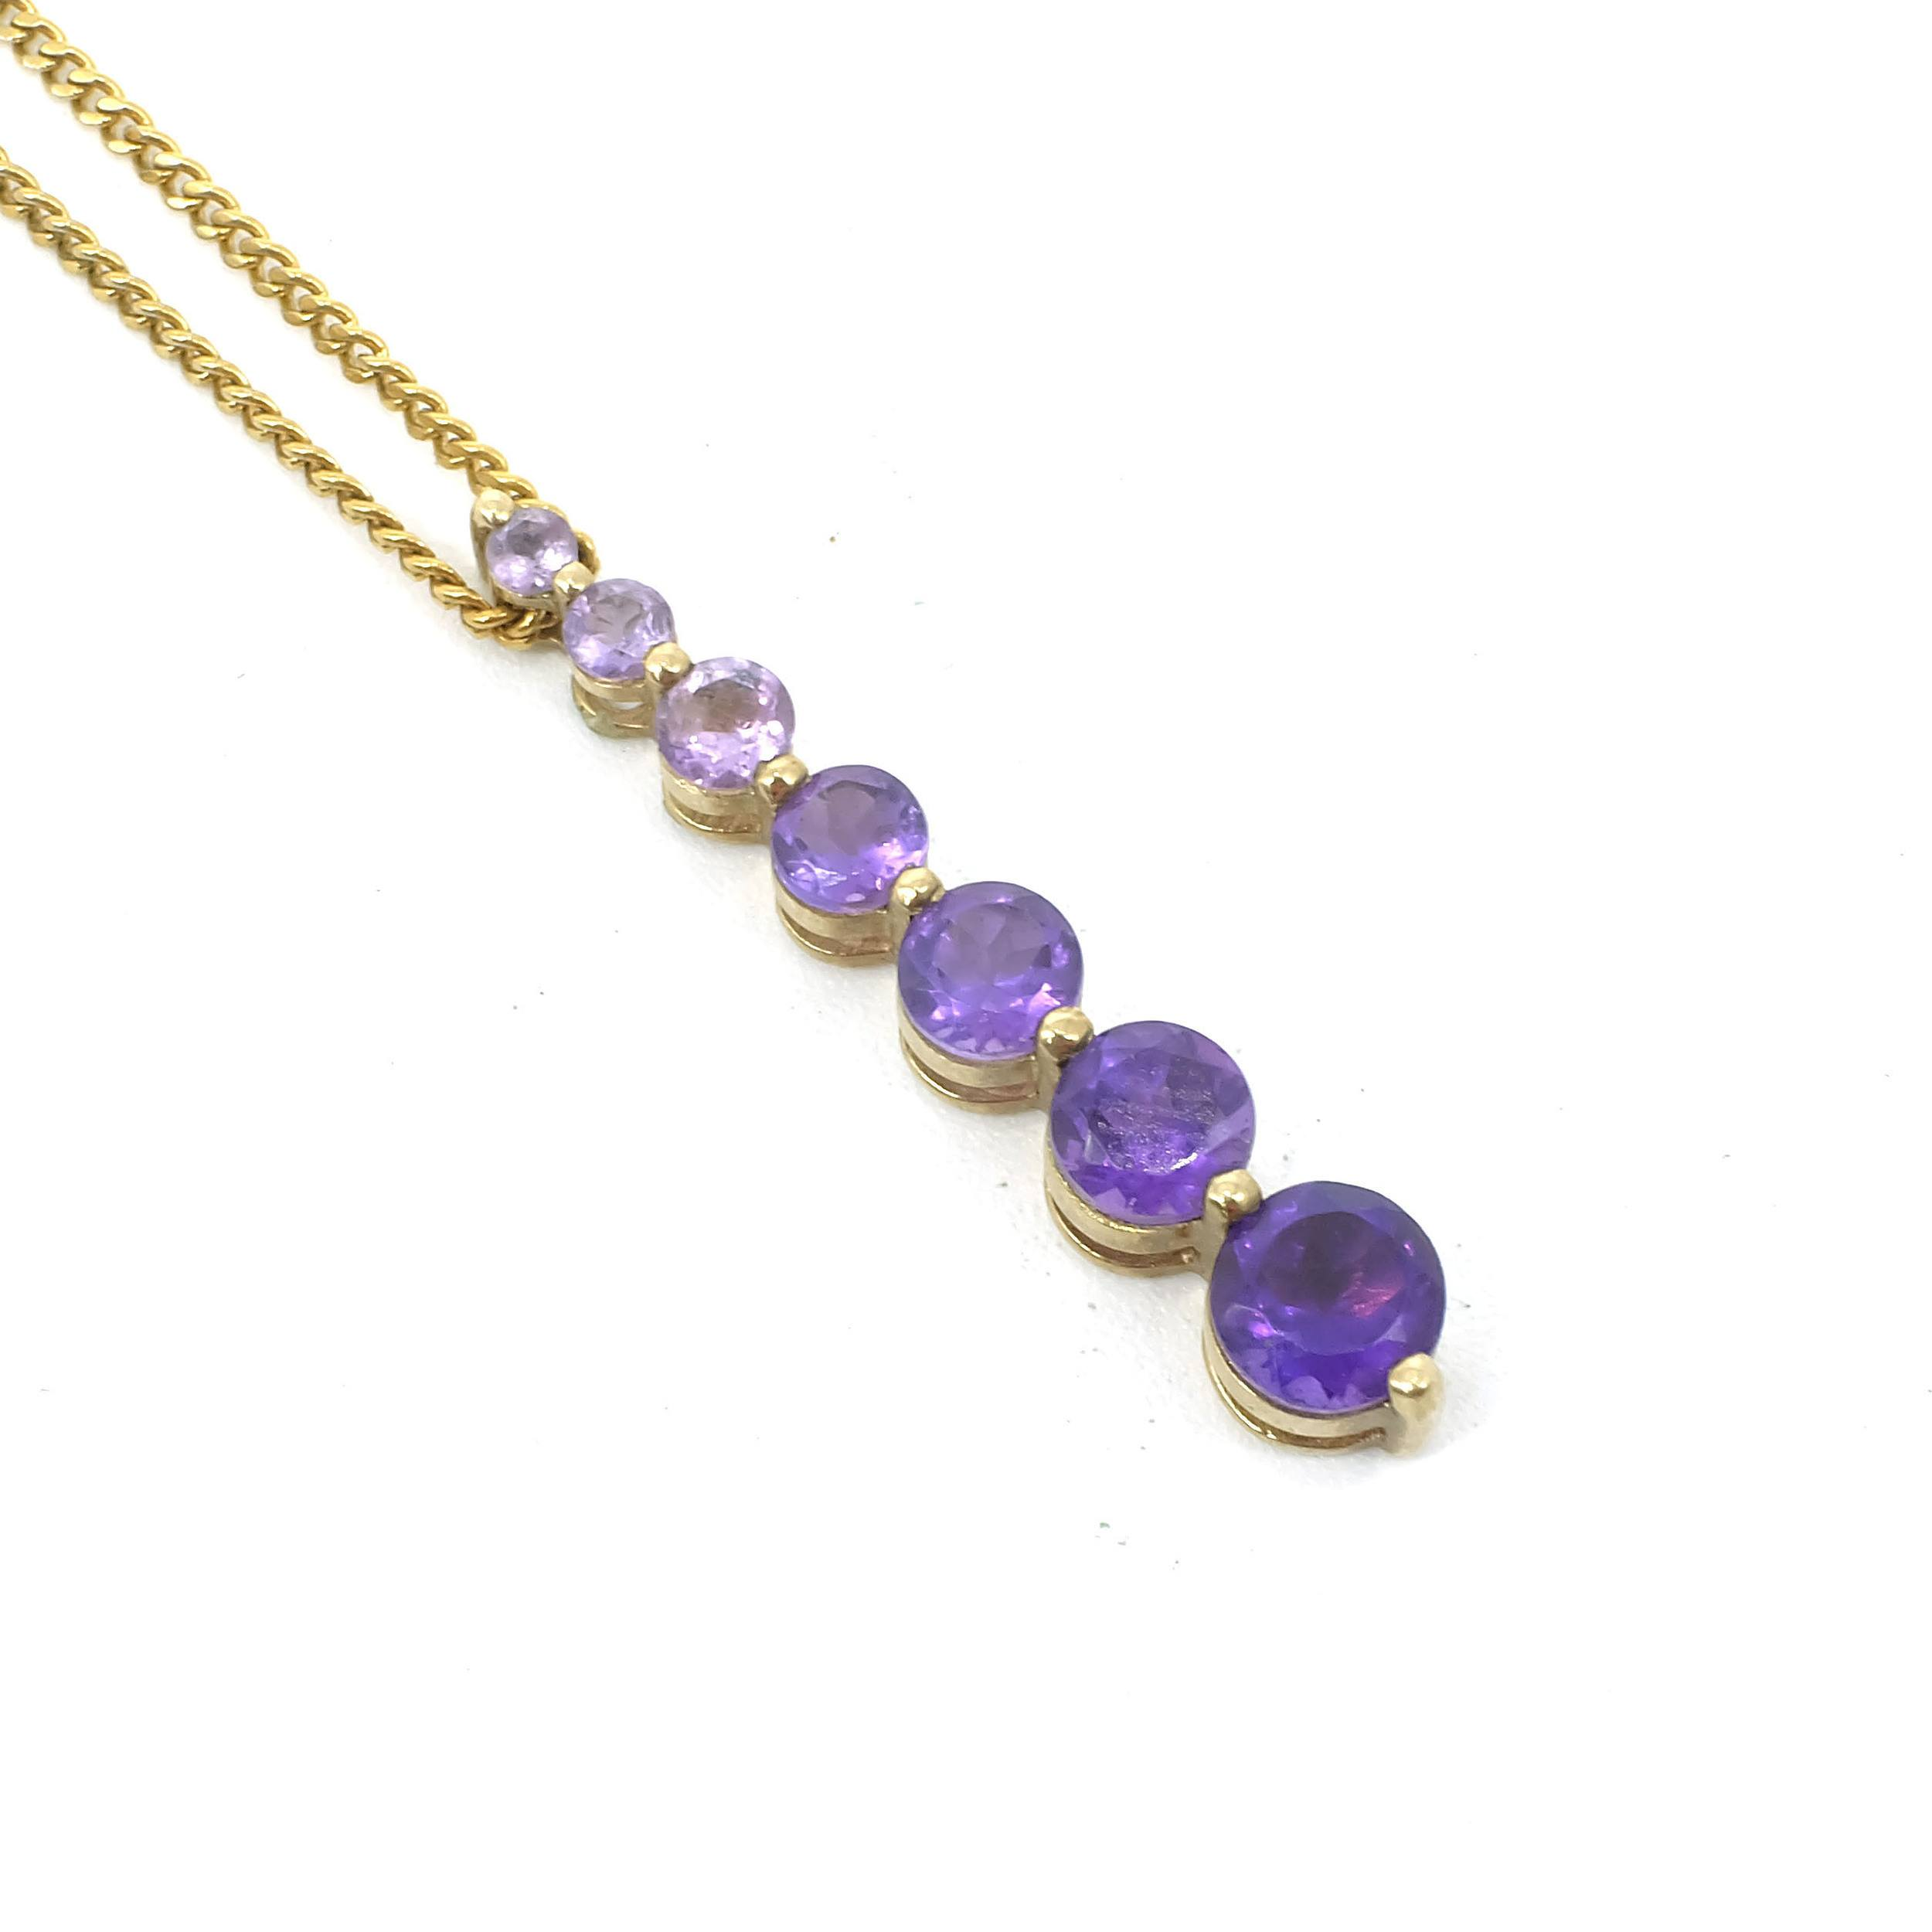 '9ct Yellow Gold Pendant with a Drop of Graduated Amethysts in Colour and Size on a Gold Plated Chain, 3g'